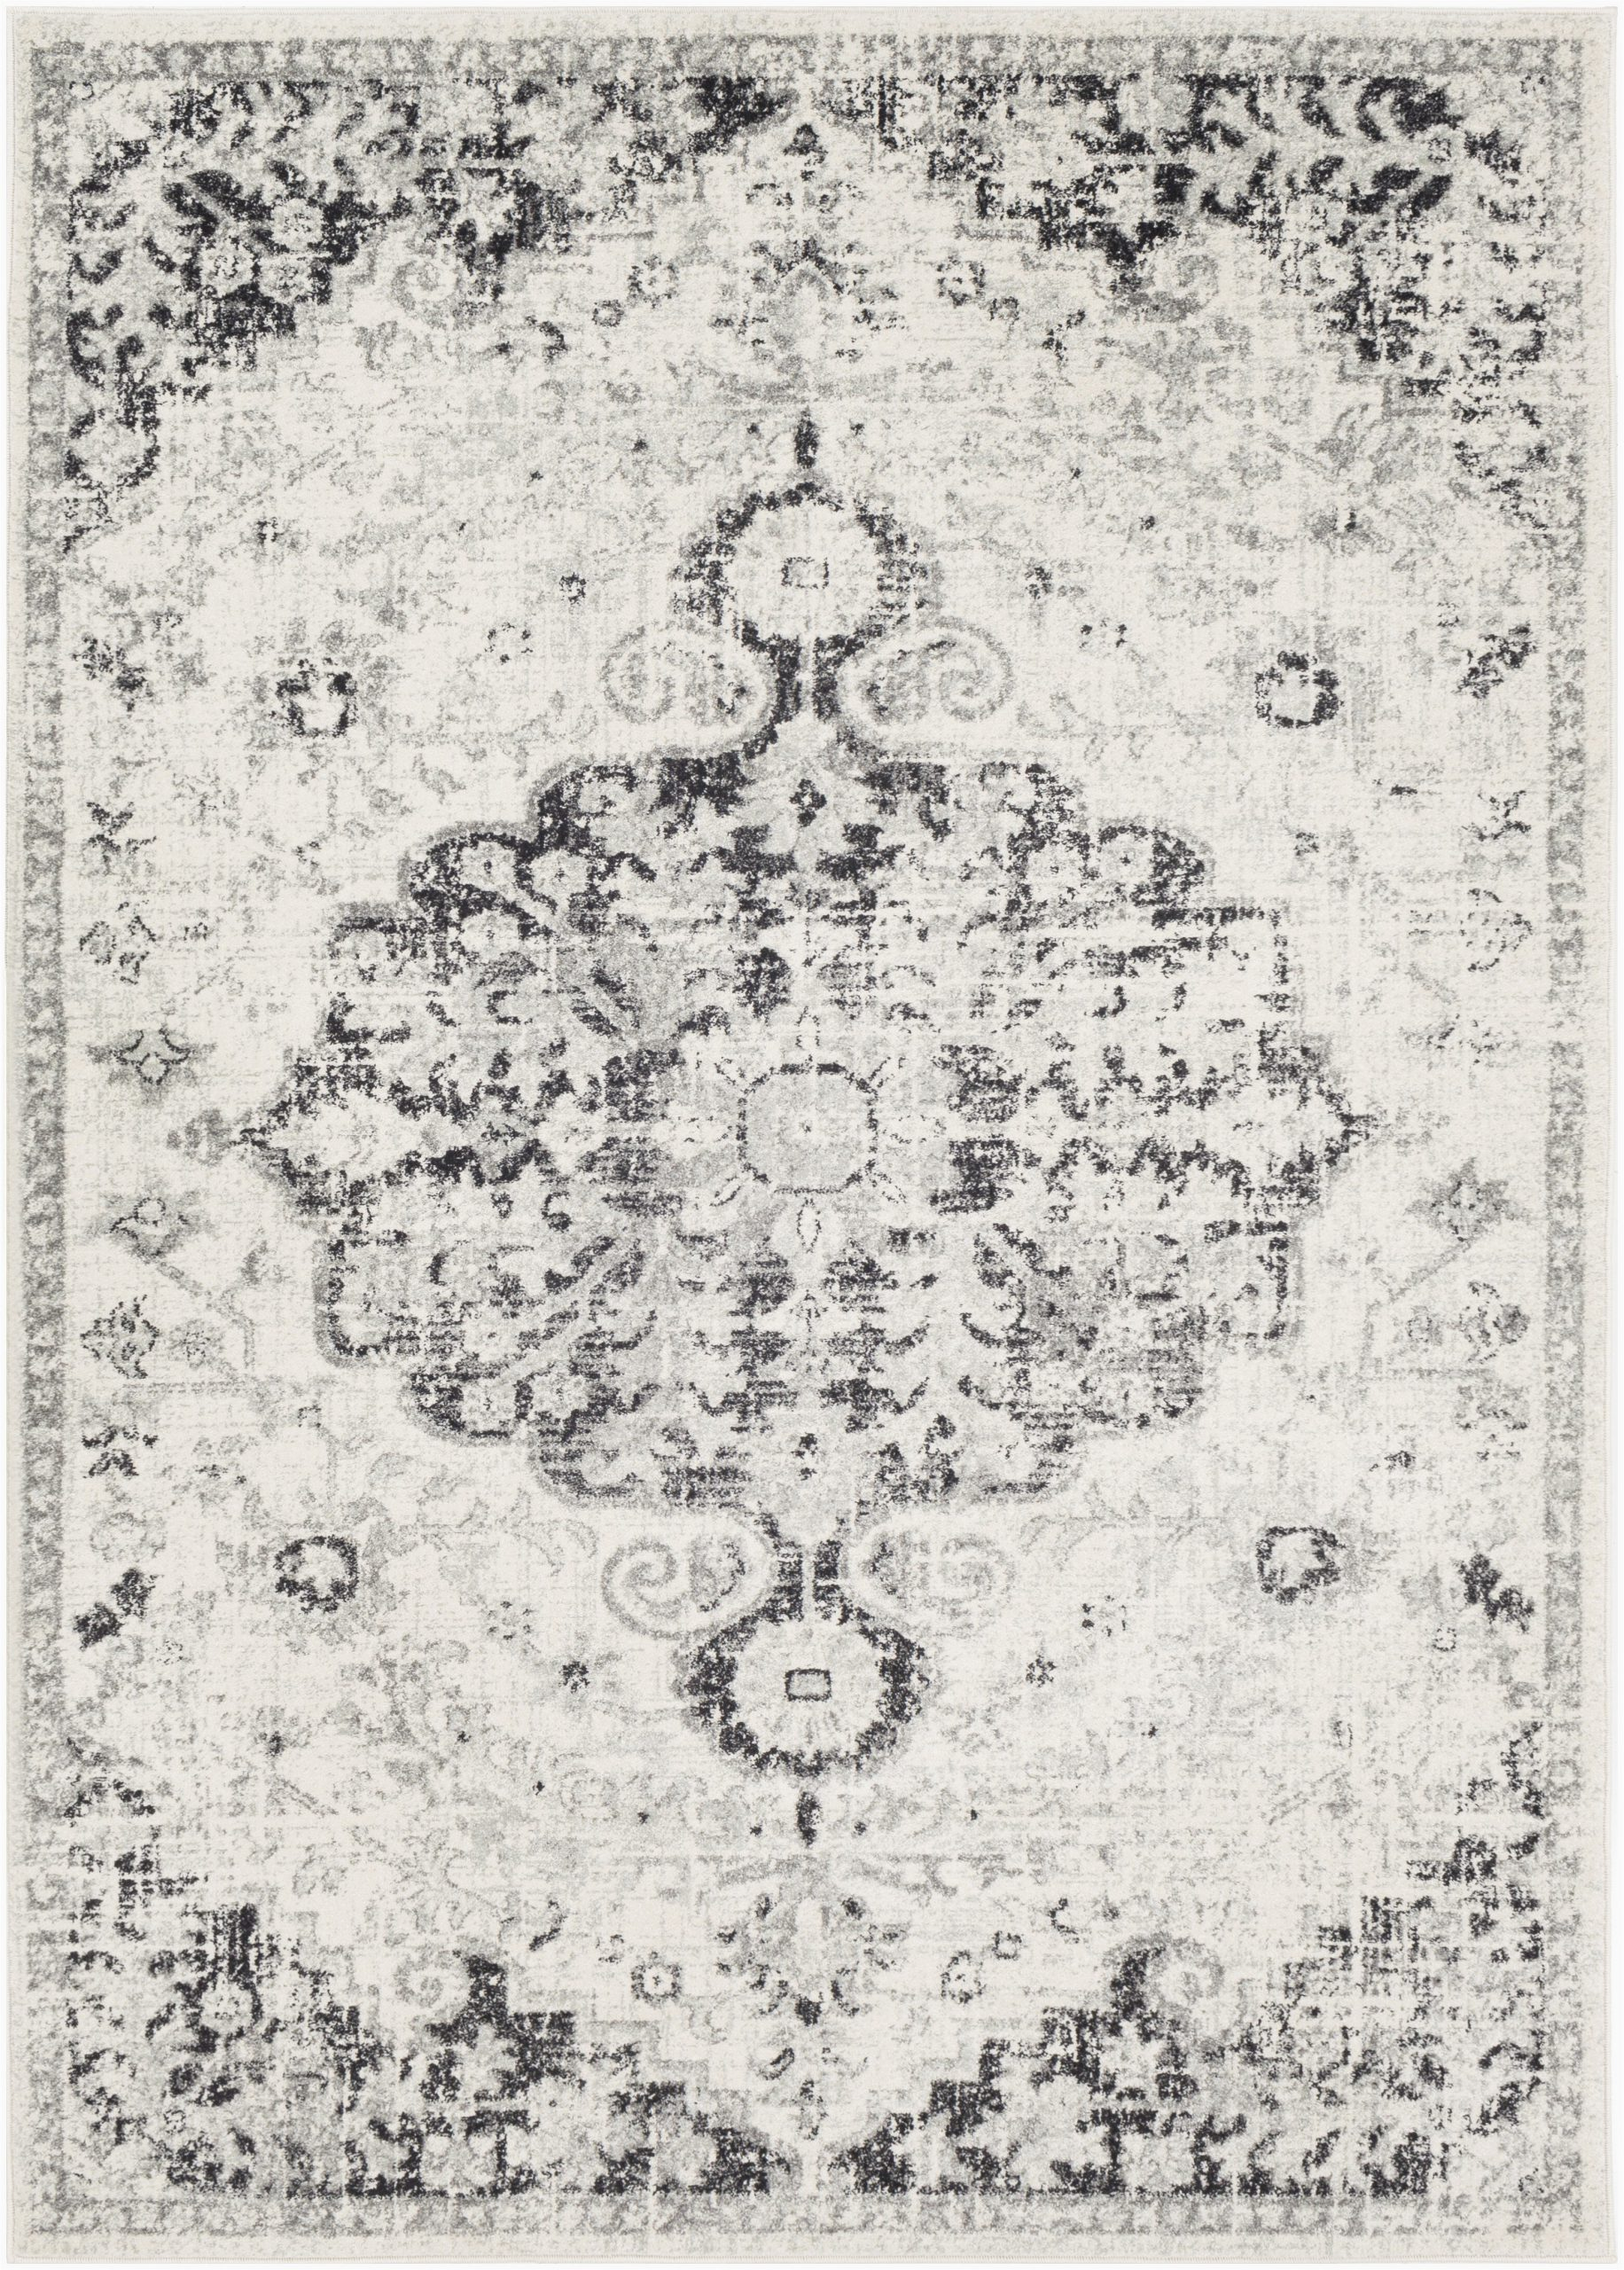 Hillsby Gray Beige area Rug Hillsby Light Gray area Rug